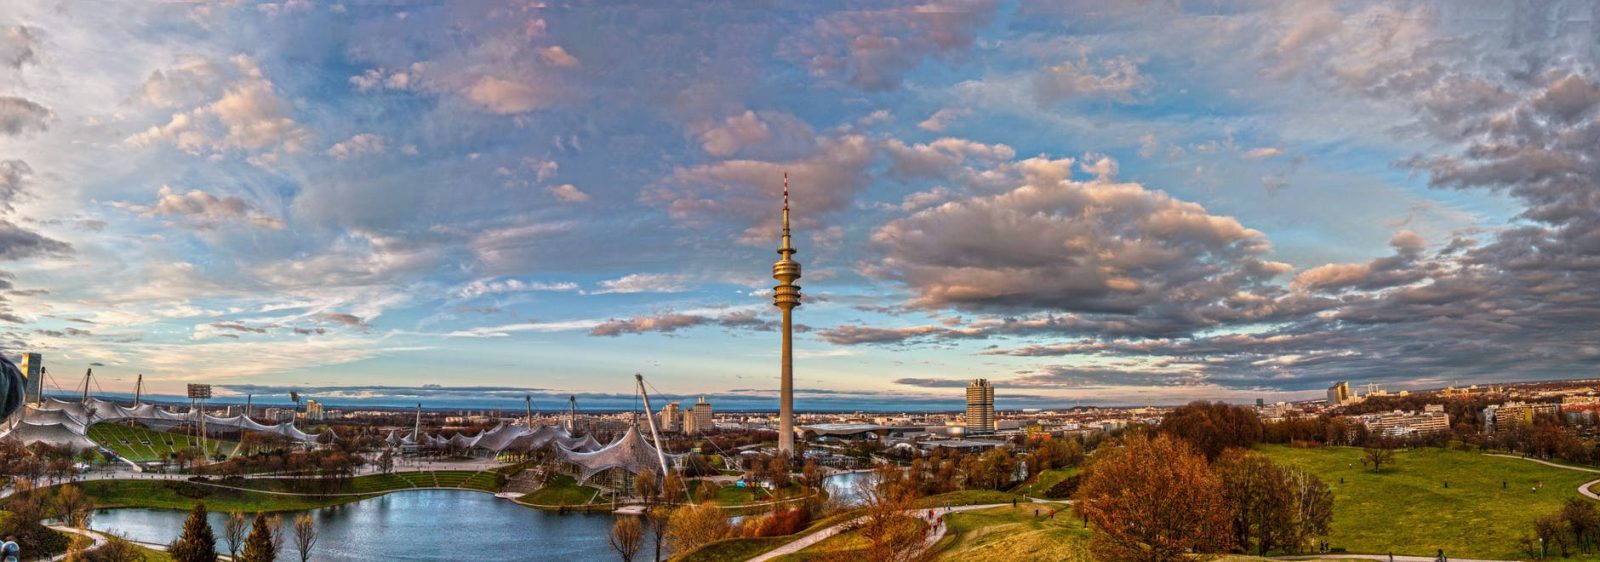 Hotel Deal for Munich Germany